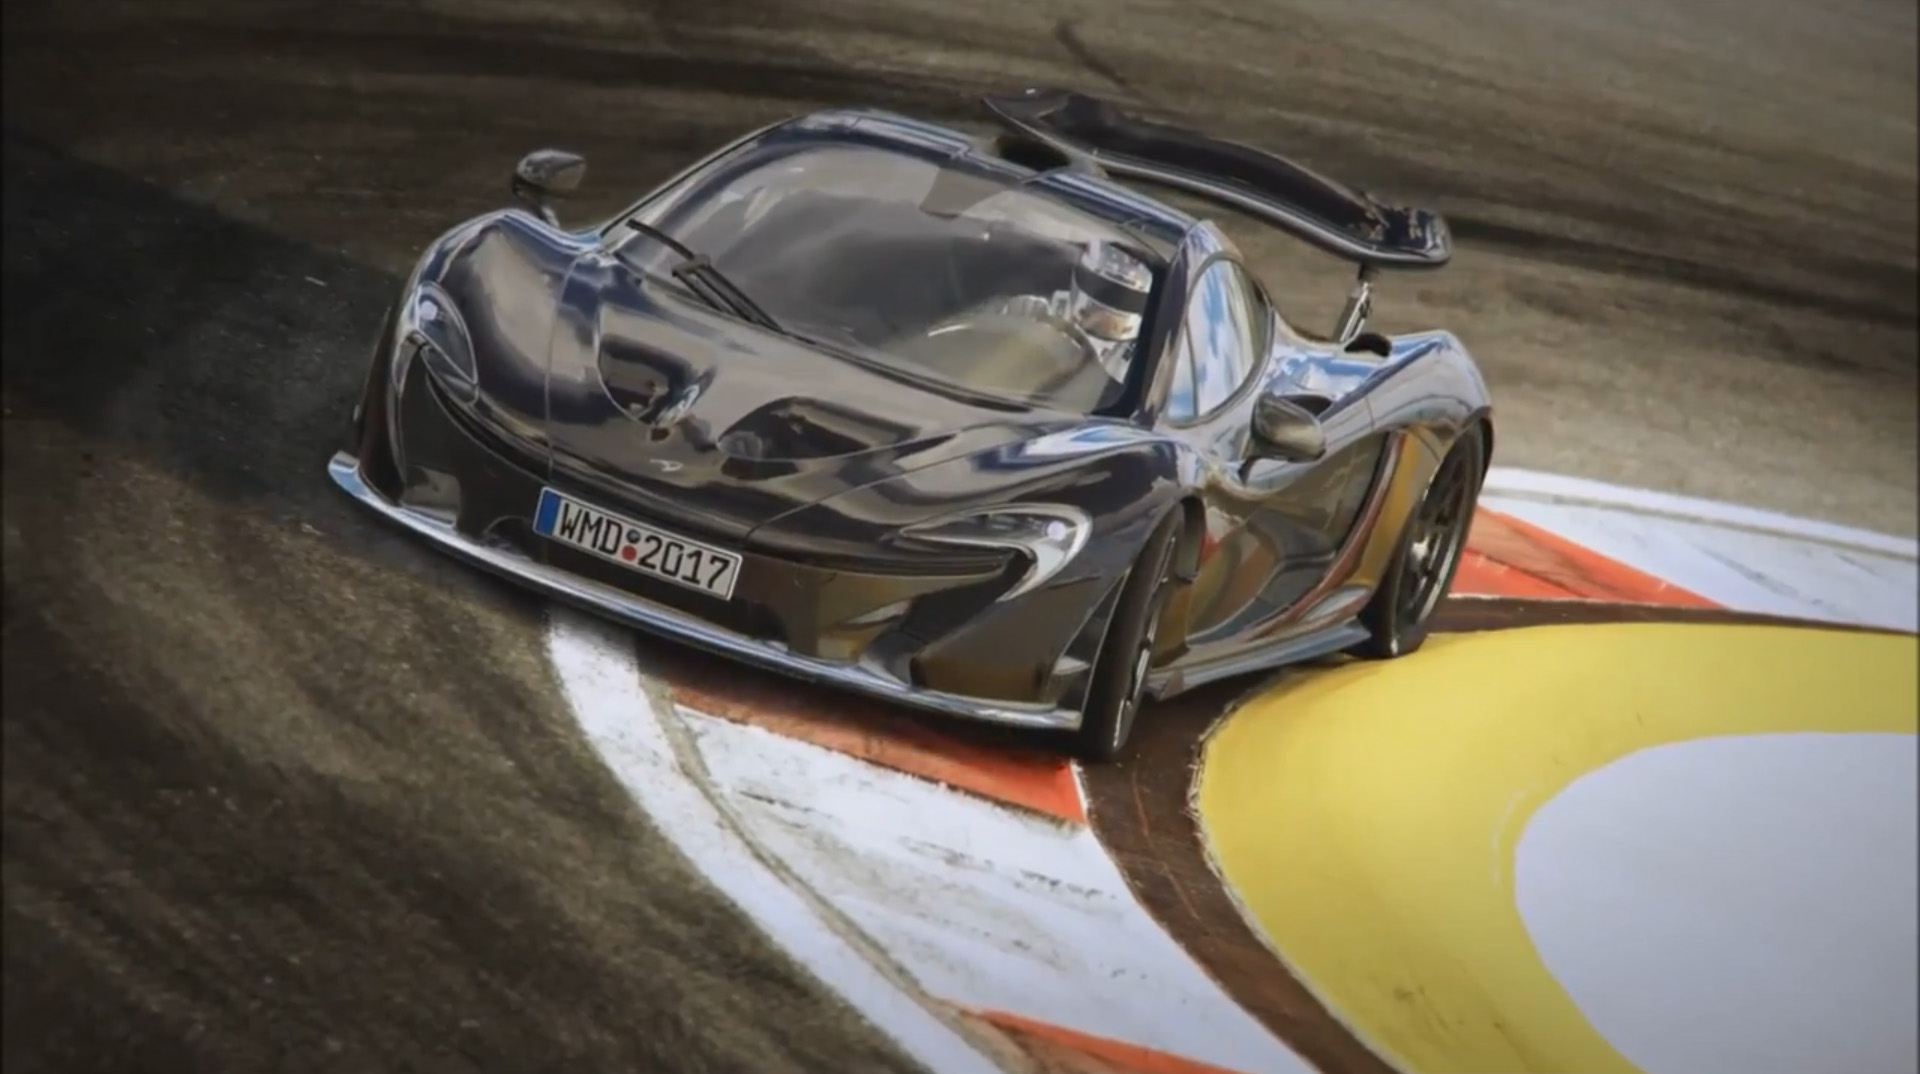 Project Cars 2 Collectors Edition Includes Mclaren 720s Model